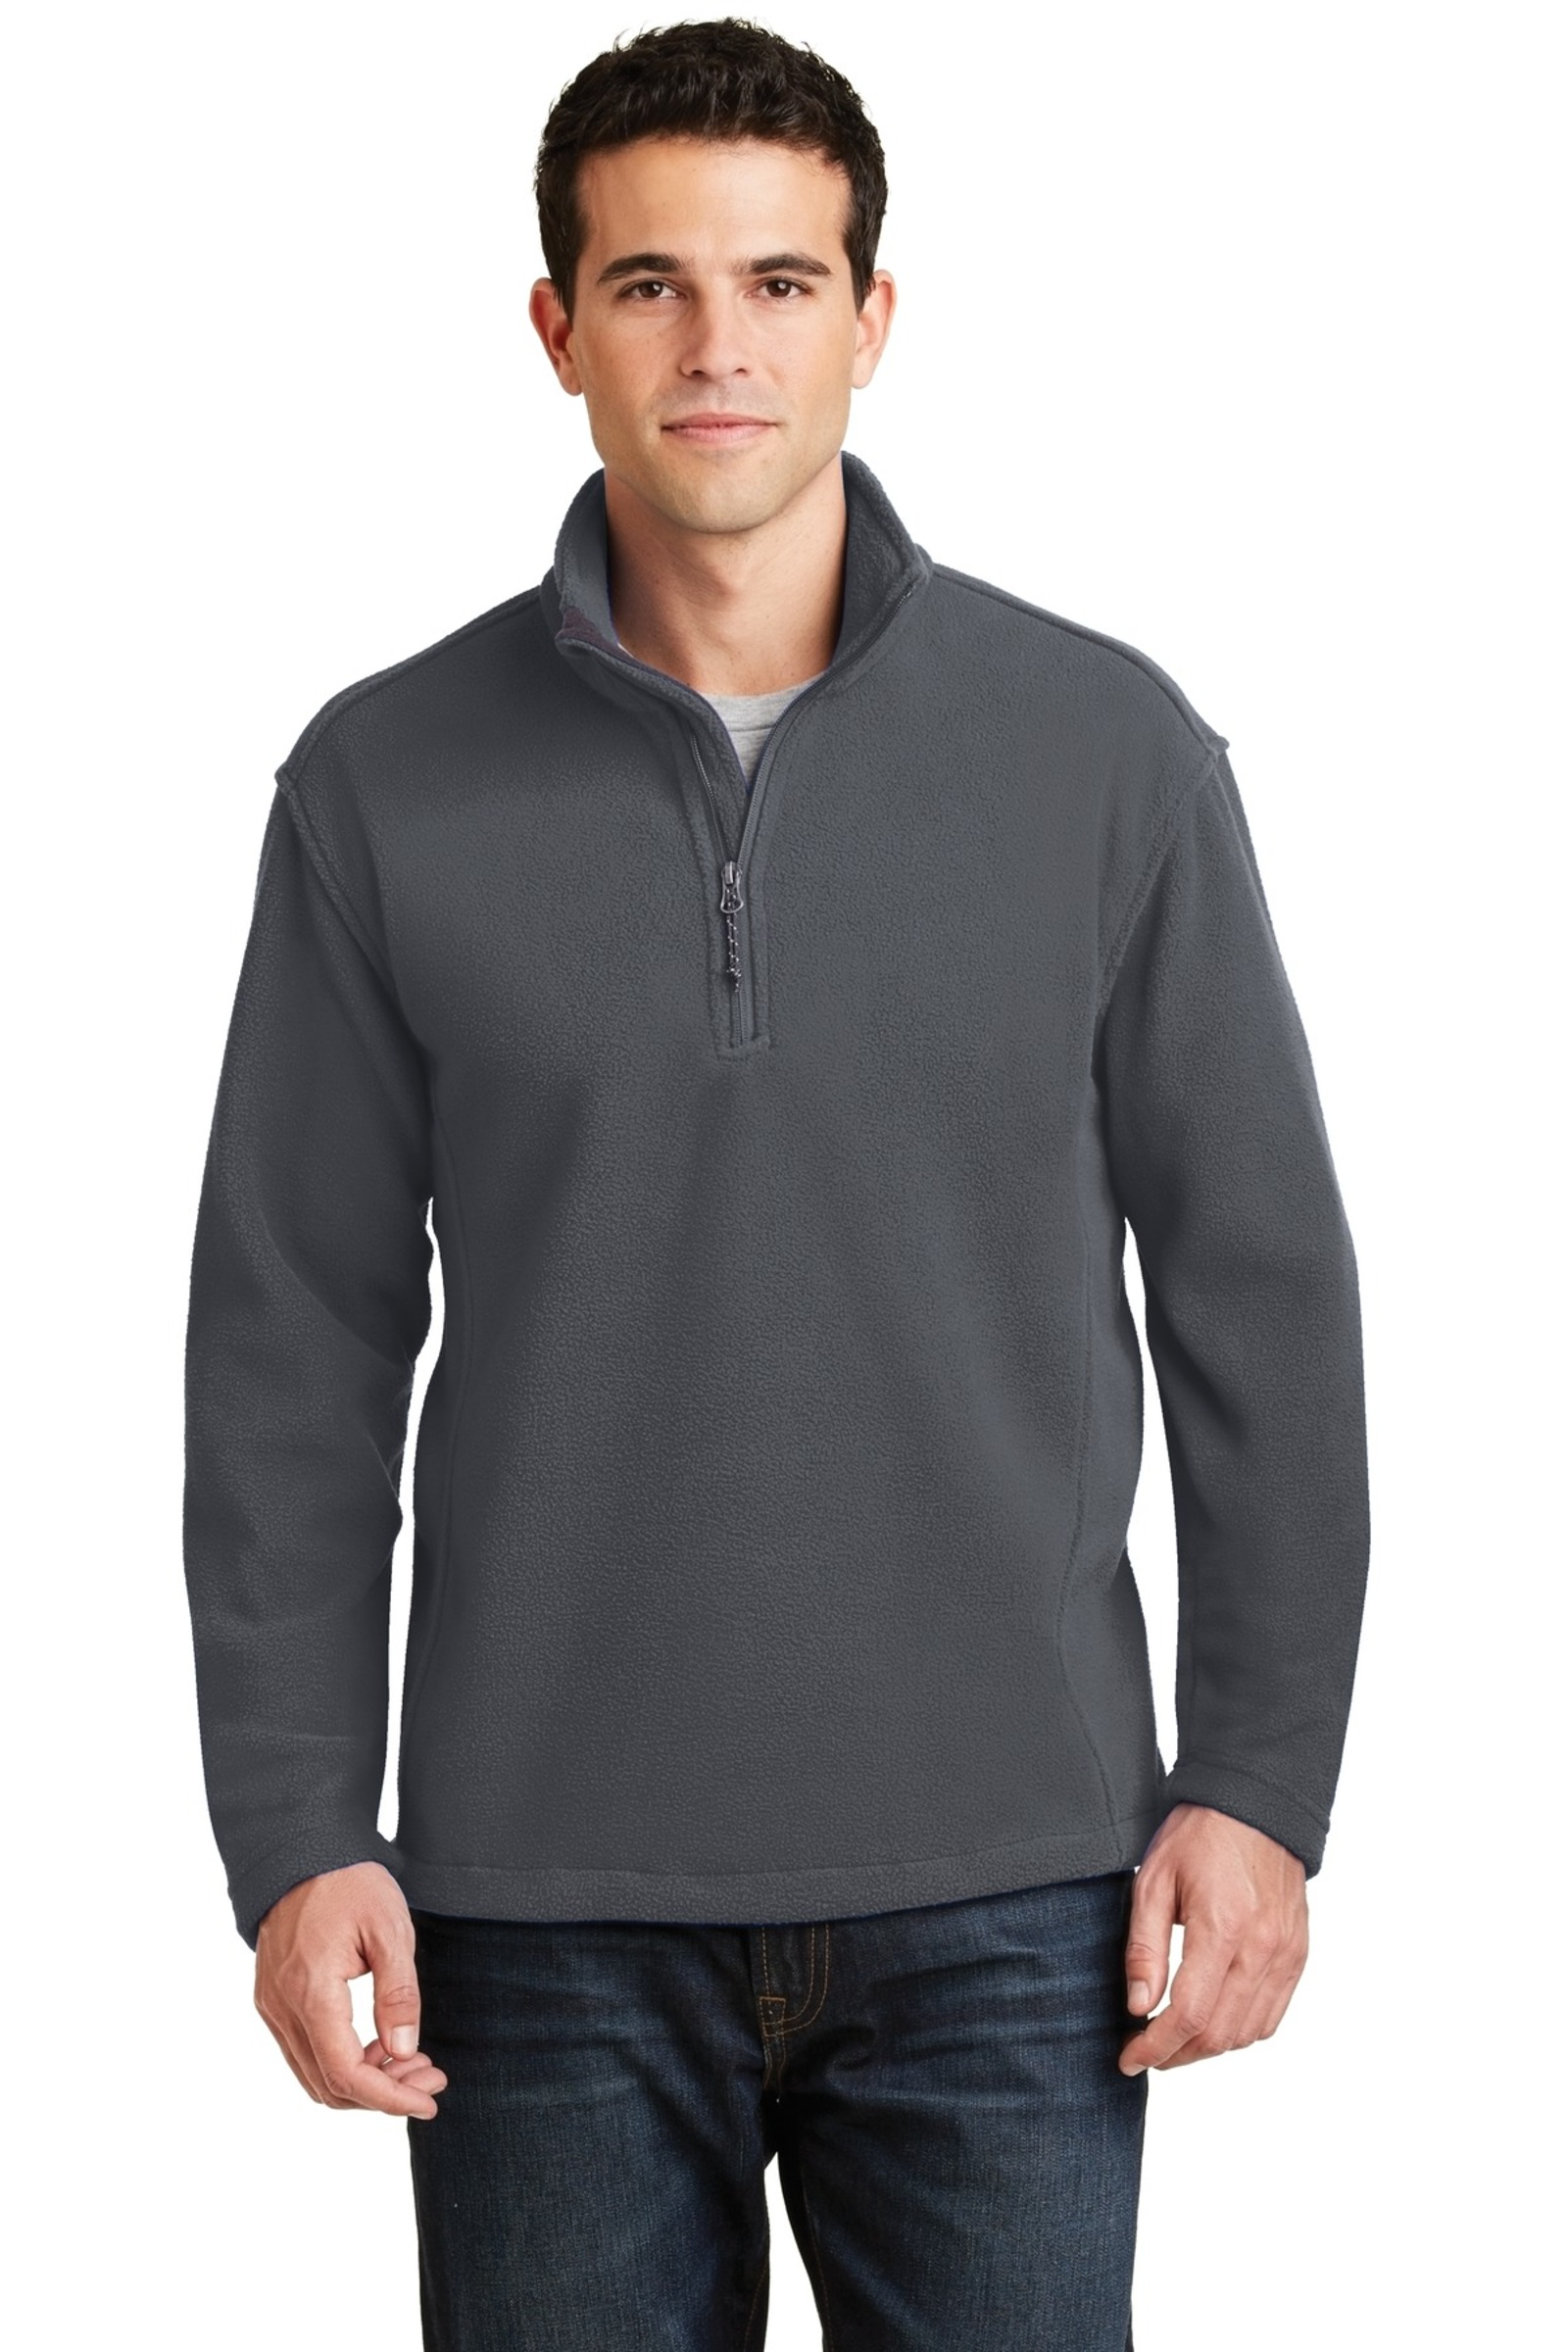 Port Authority Embroidered Men's Value Fleece 1/4-Zip Pullover